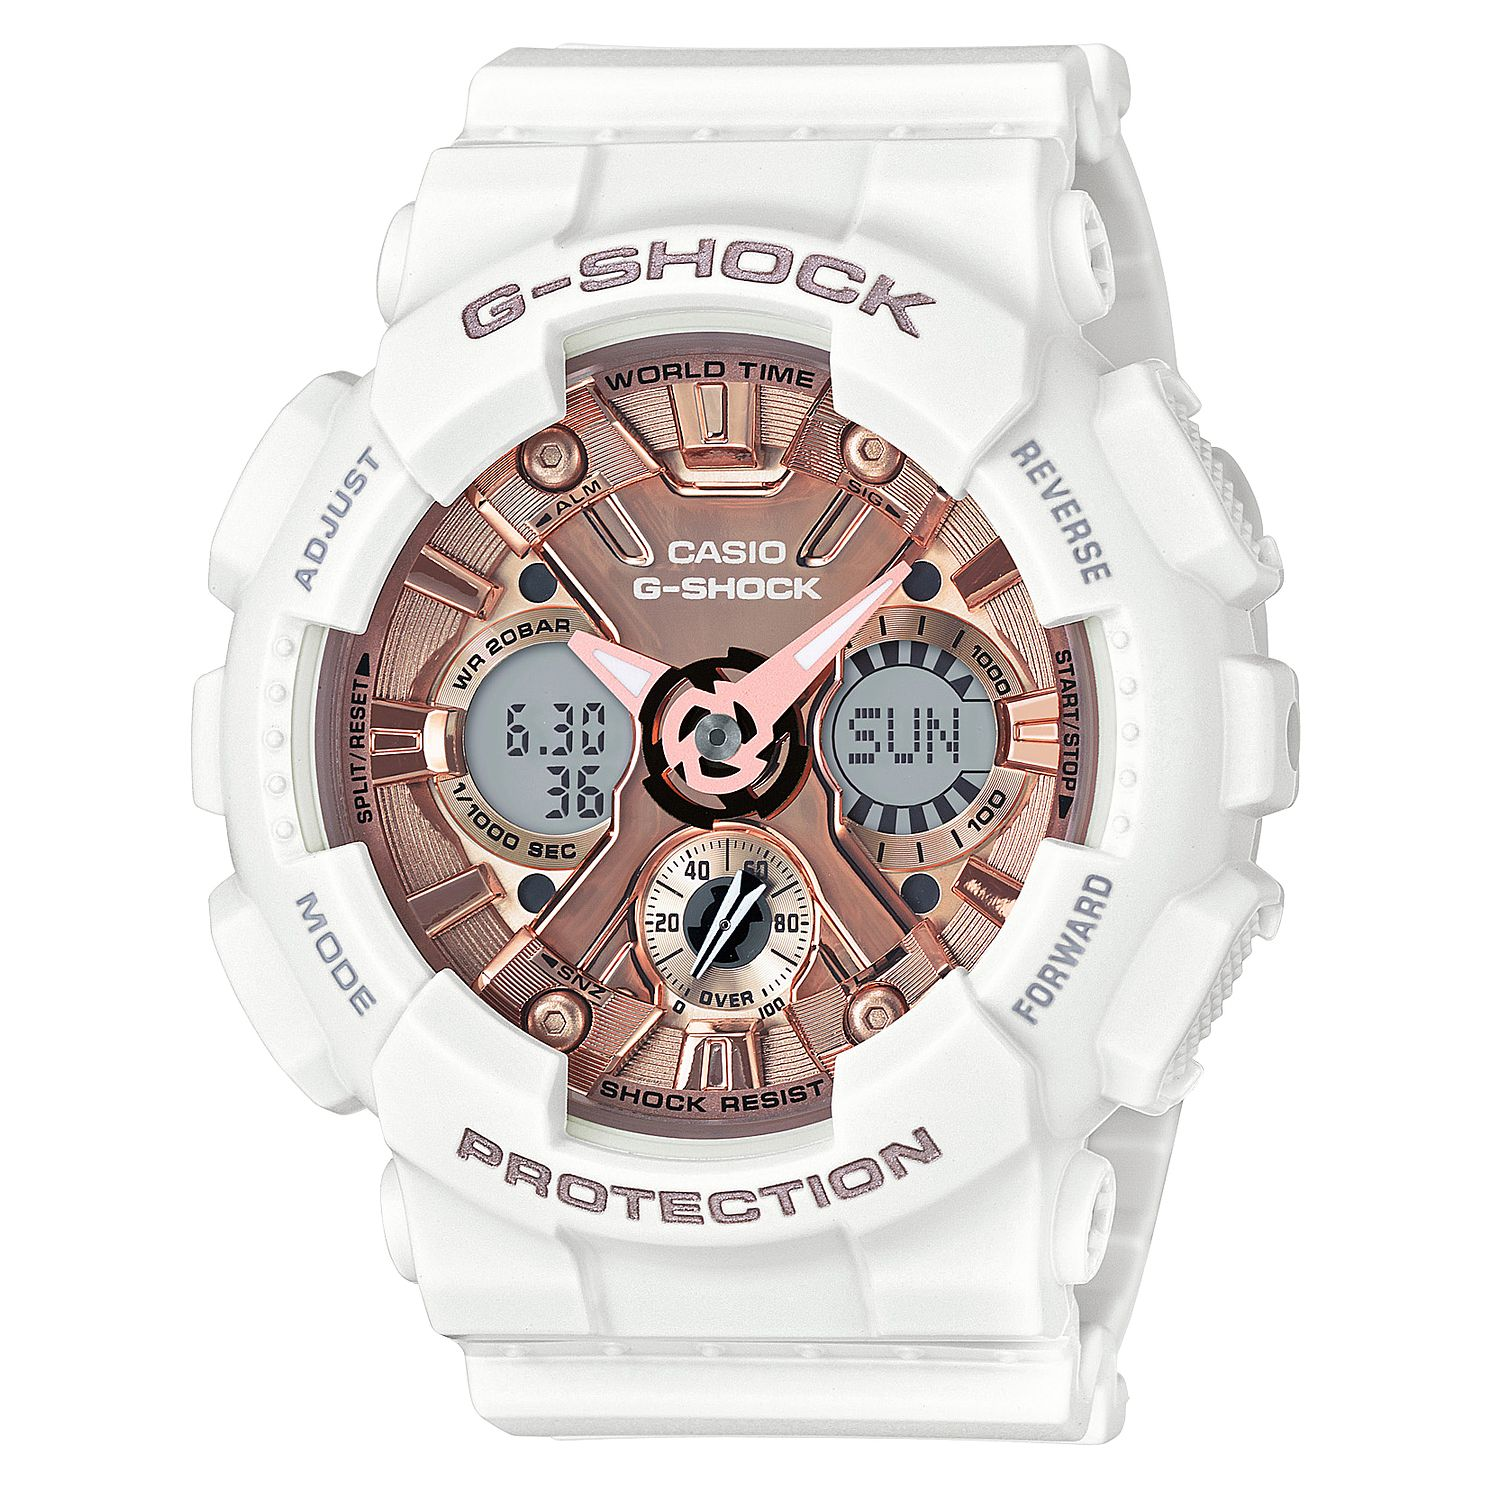 Casio G-SHOCK White Resin Strap Watch - Product number 3177521